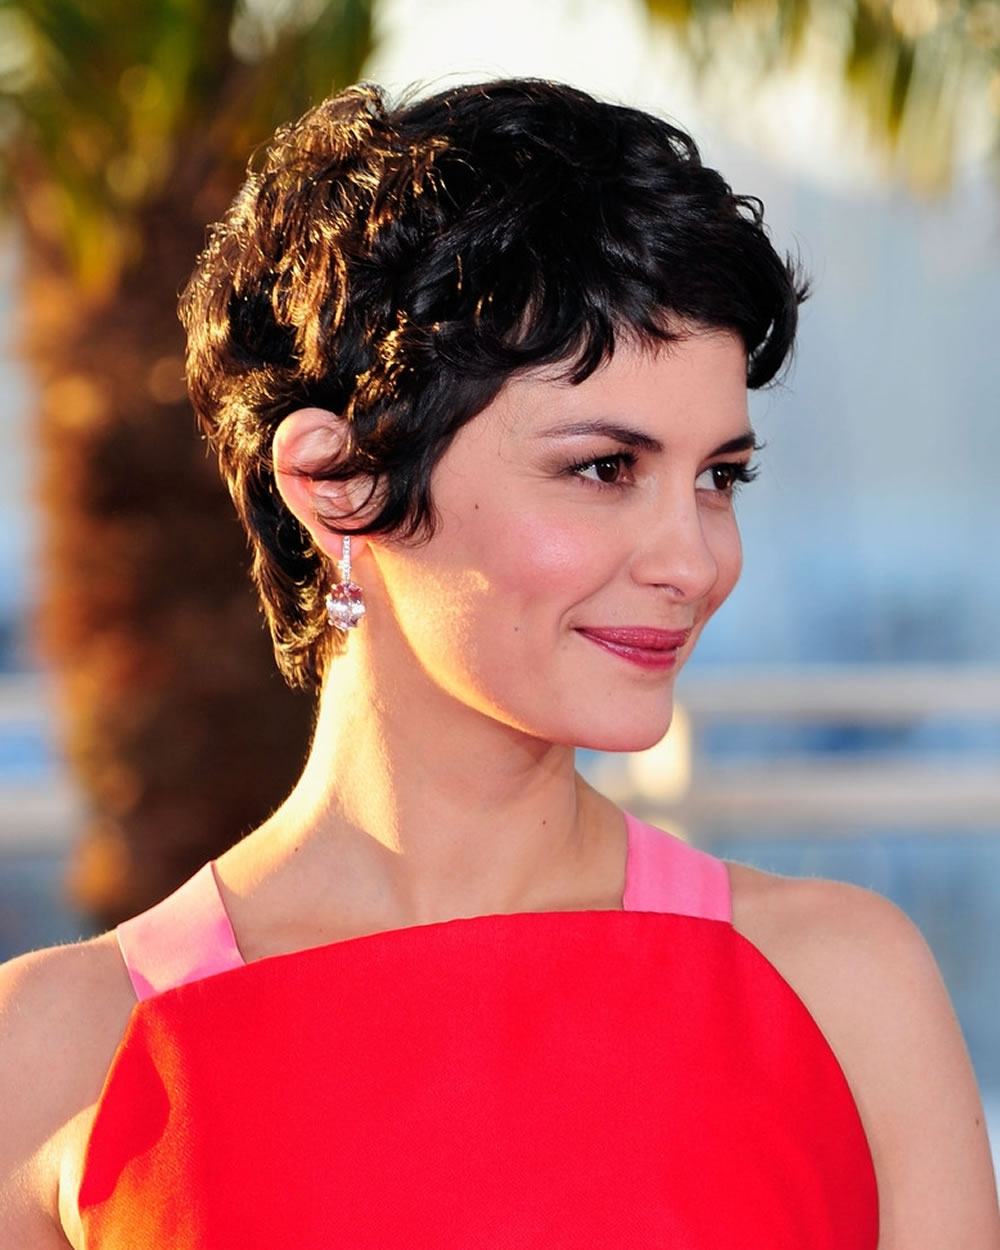 Pixie Haircuts For 2018 & Pixie Short Hairstyle Ideas With Recent Pixie Hairstyles For Curly Hair (View 9 of 15)